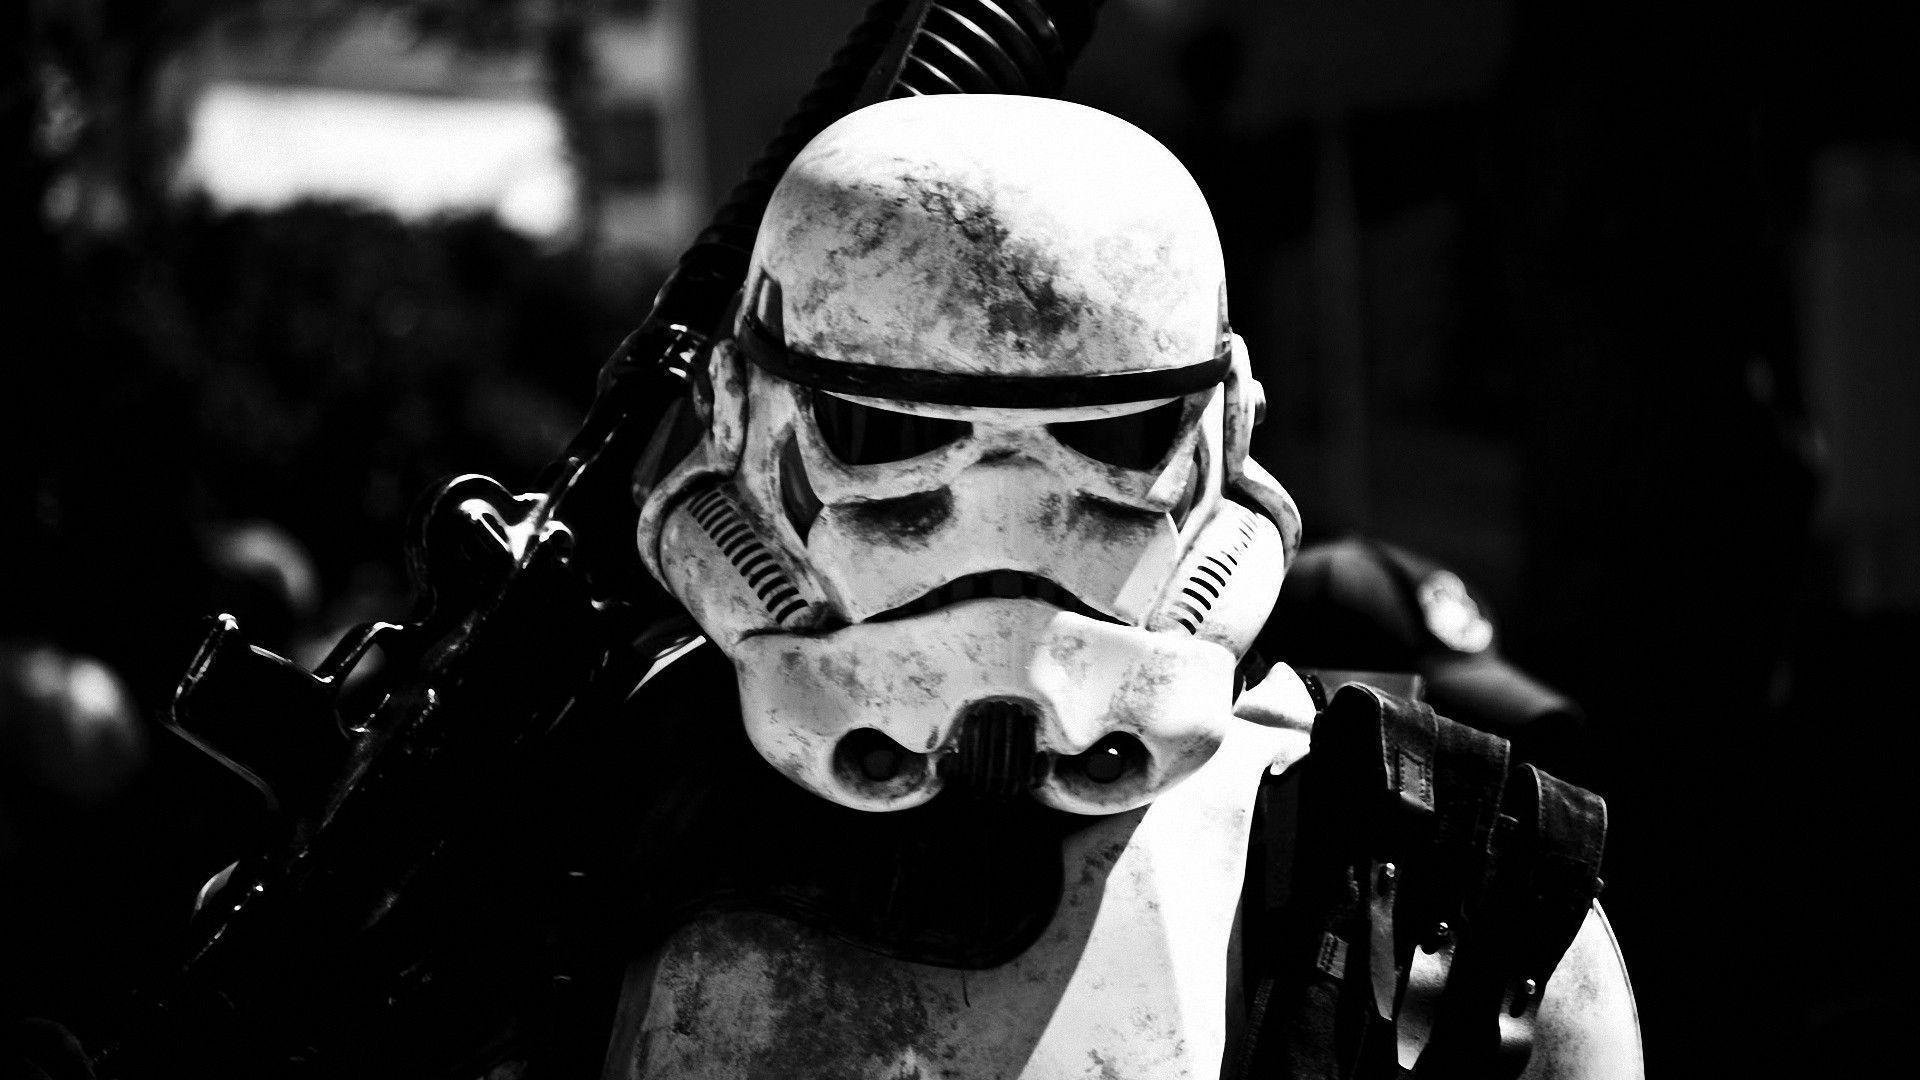 Star Wars Stormtrooper Wallpapers Top Free Star Wars Stormtrooper Backgrounds Wallpaperaccess